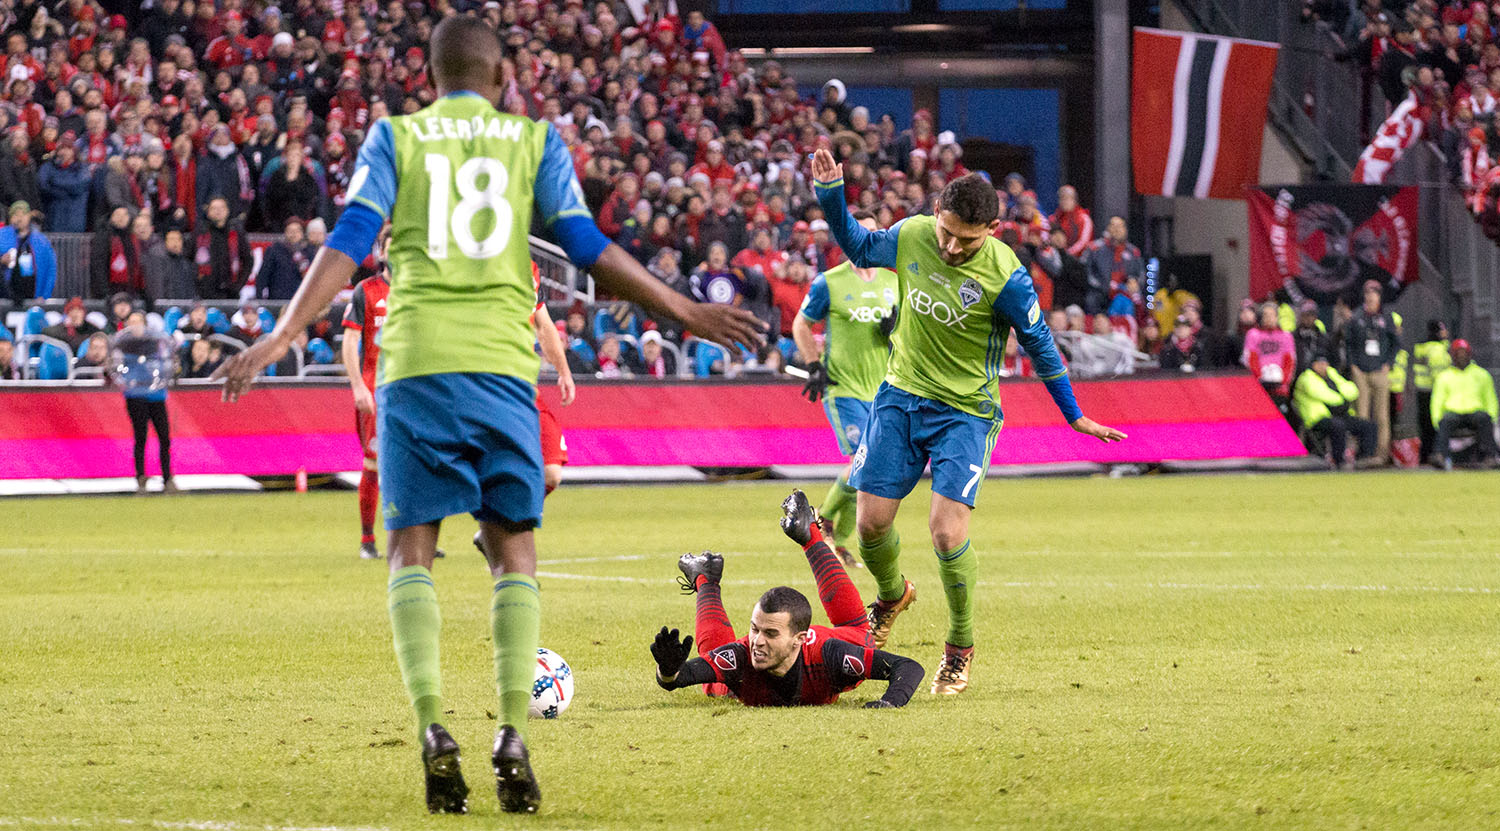 Sebastian Giovinco taken down to ground during the 2017 MLS Cup Playoffs.Image by Dennis Marciniak of denMAR Media.